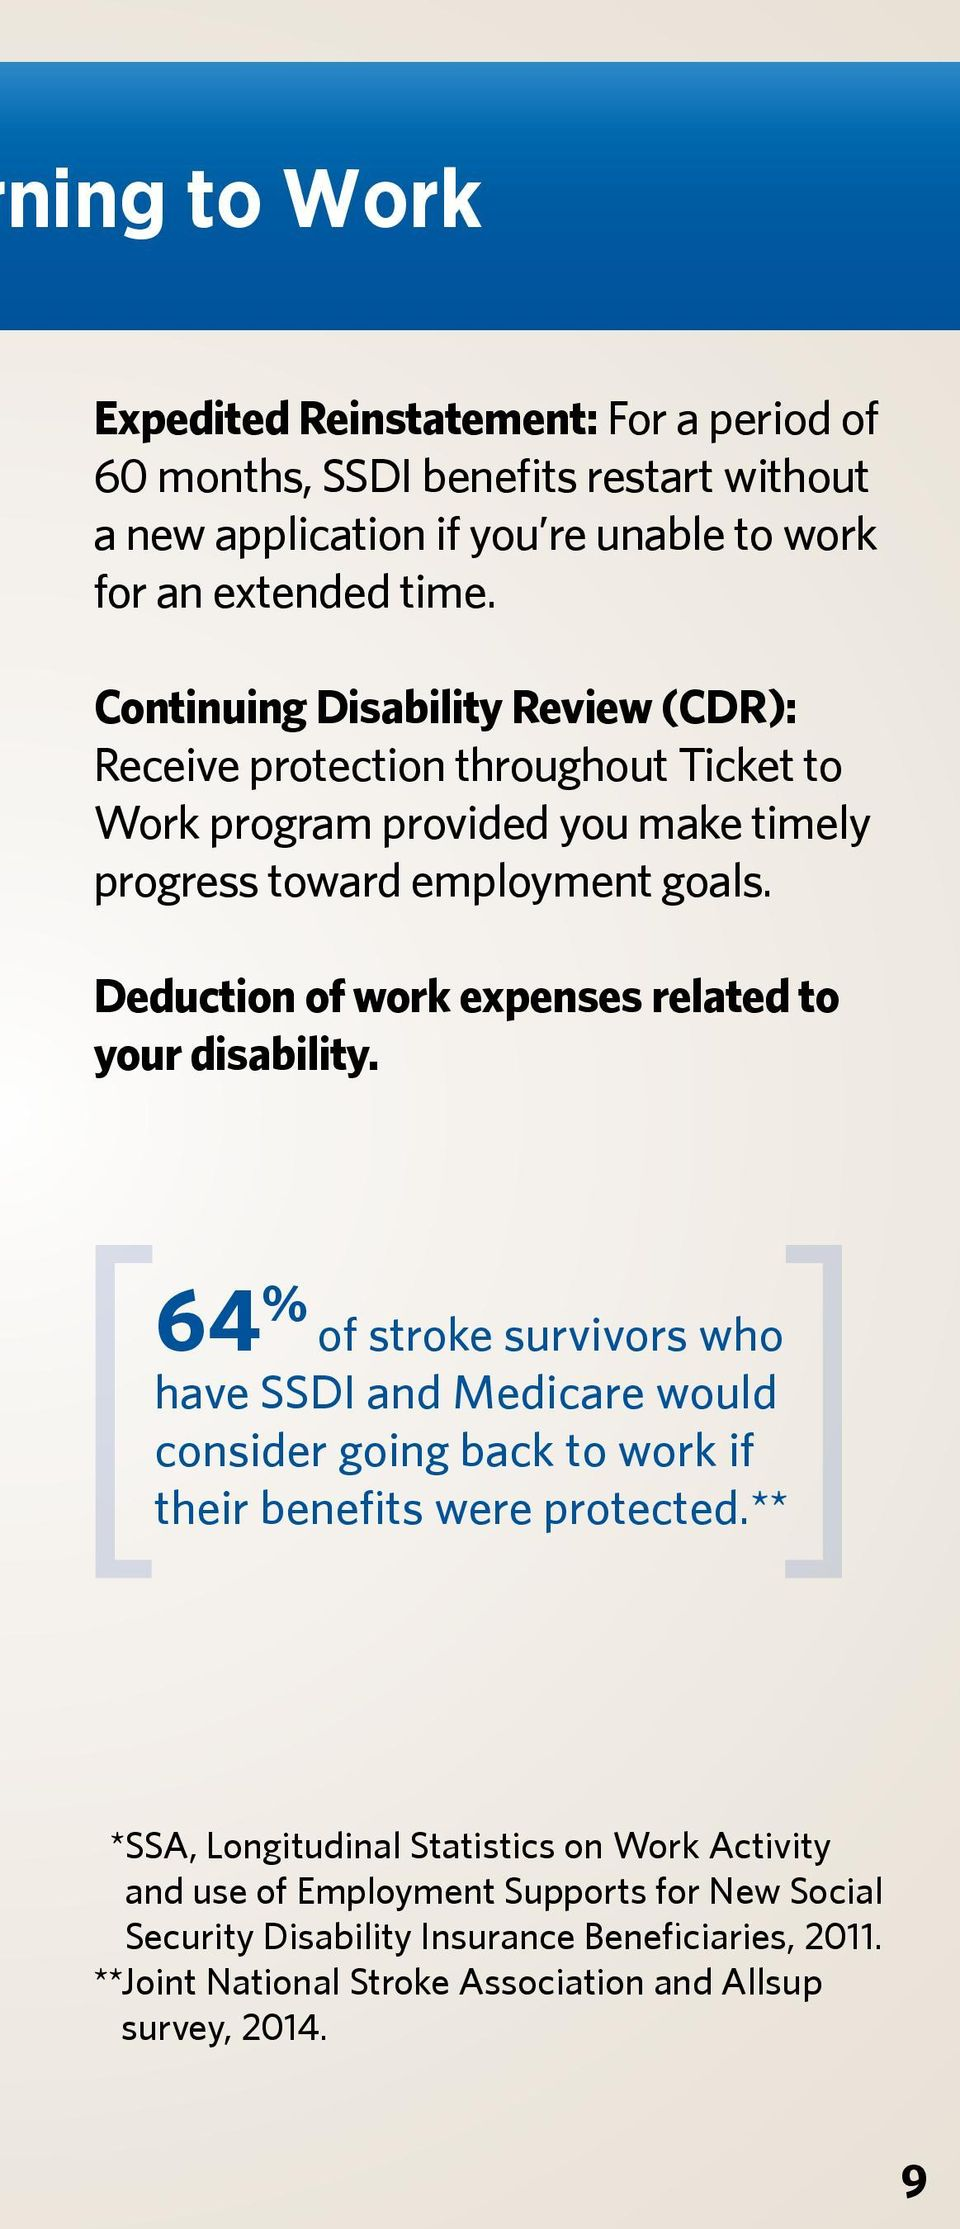 Deduction of work expenses related to your disability. 64 % of stroke survivors who have SSDI and Medicare would consider going back to work if their benefits were protected.